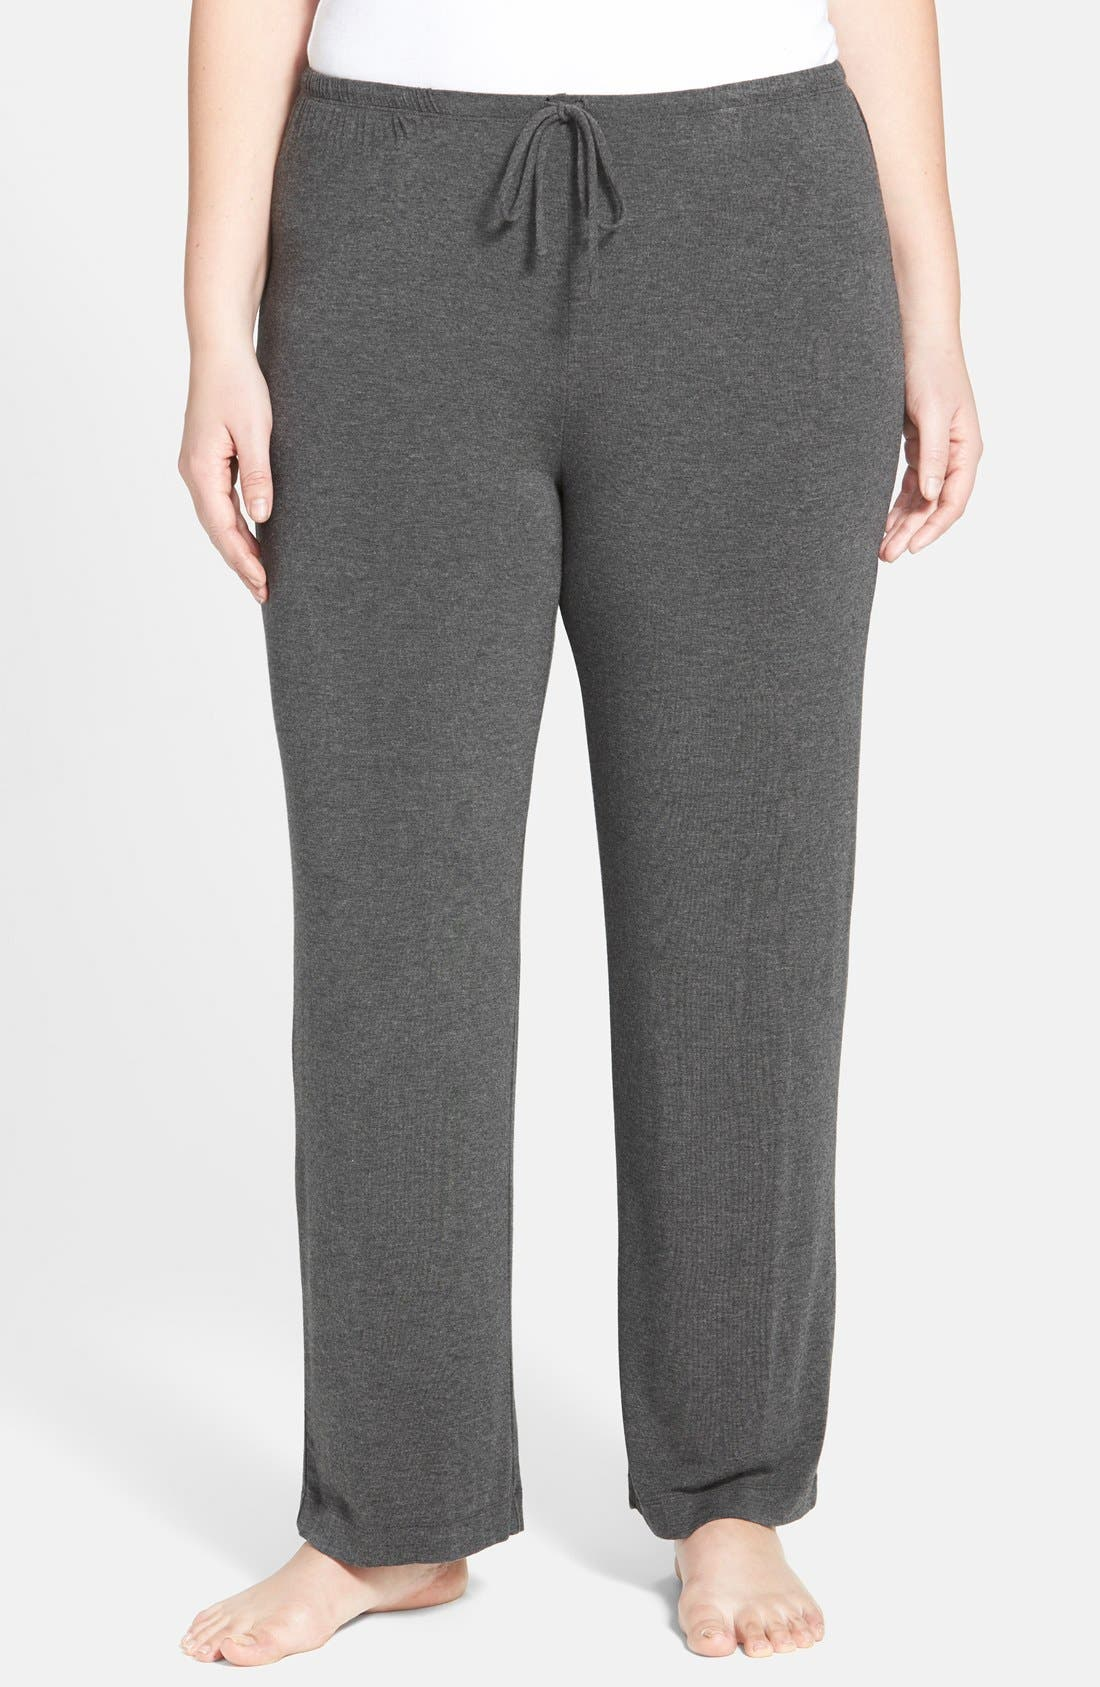 DKNY 'Urban Essentials' Pants (Plus Size)